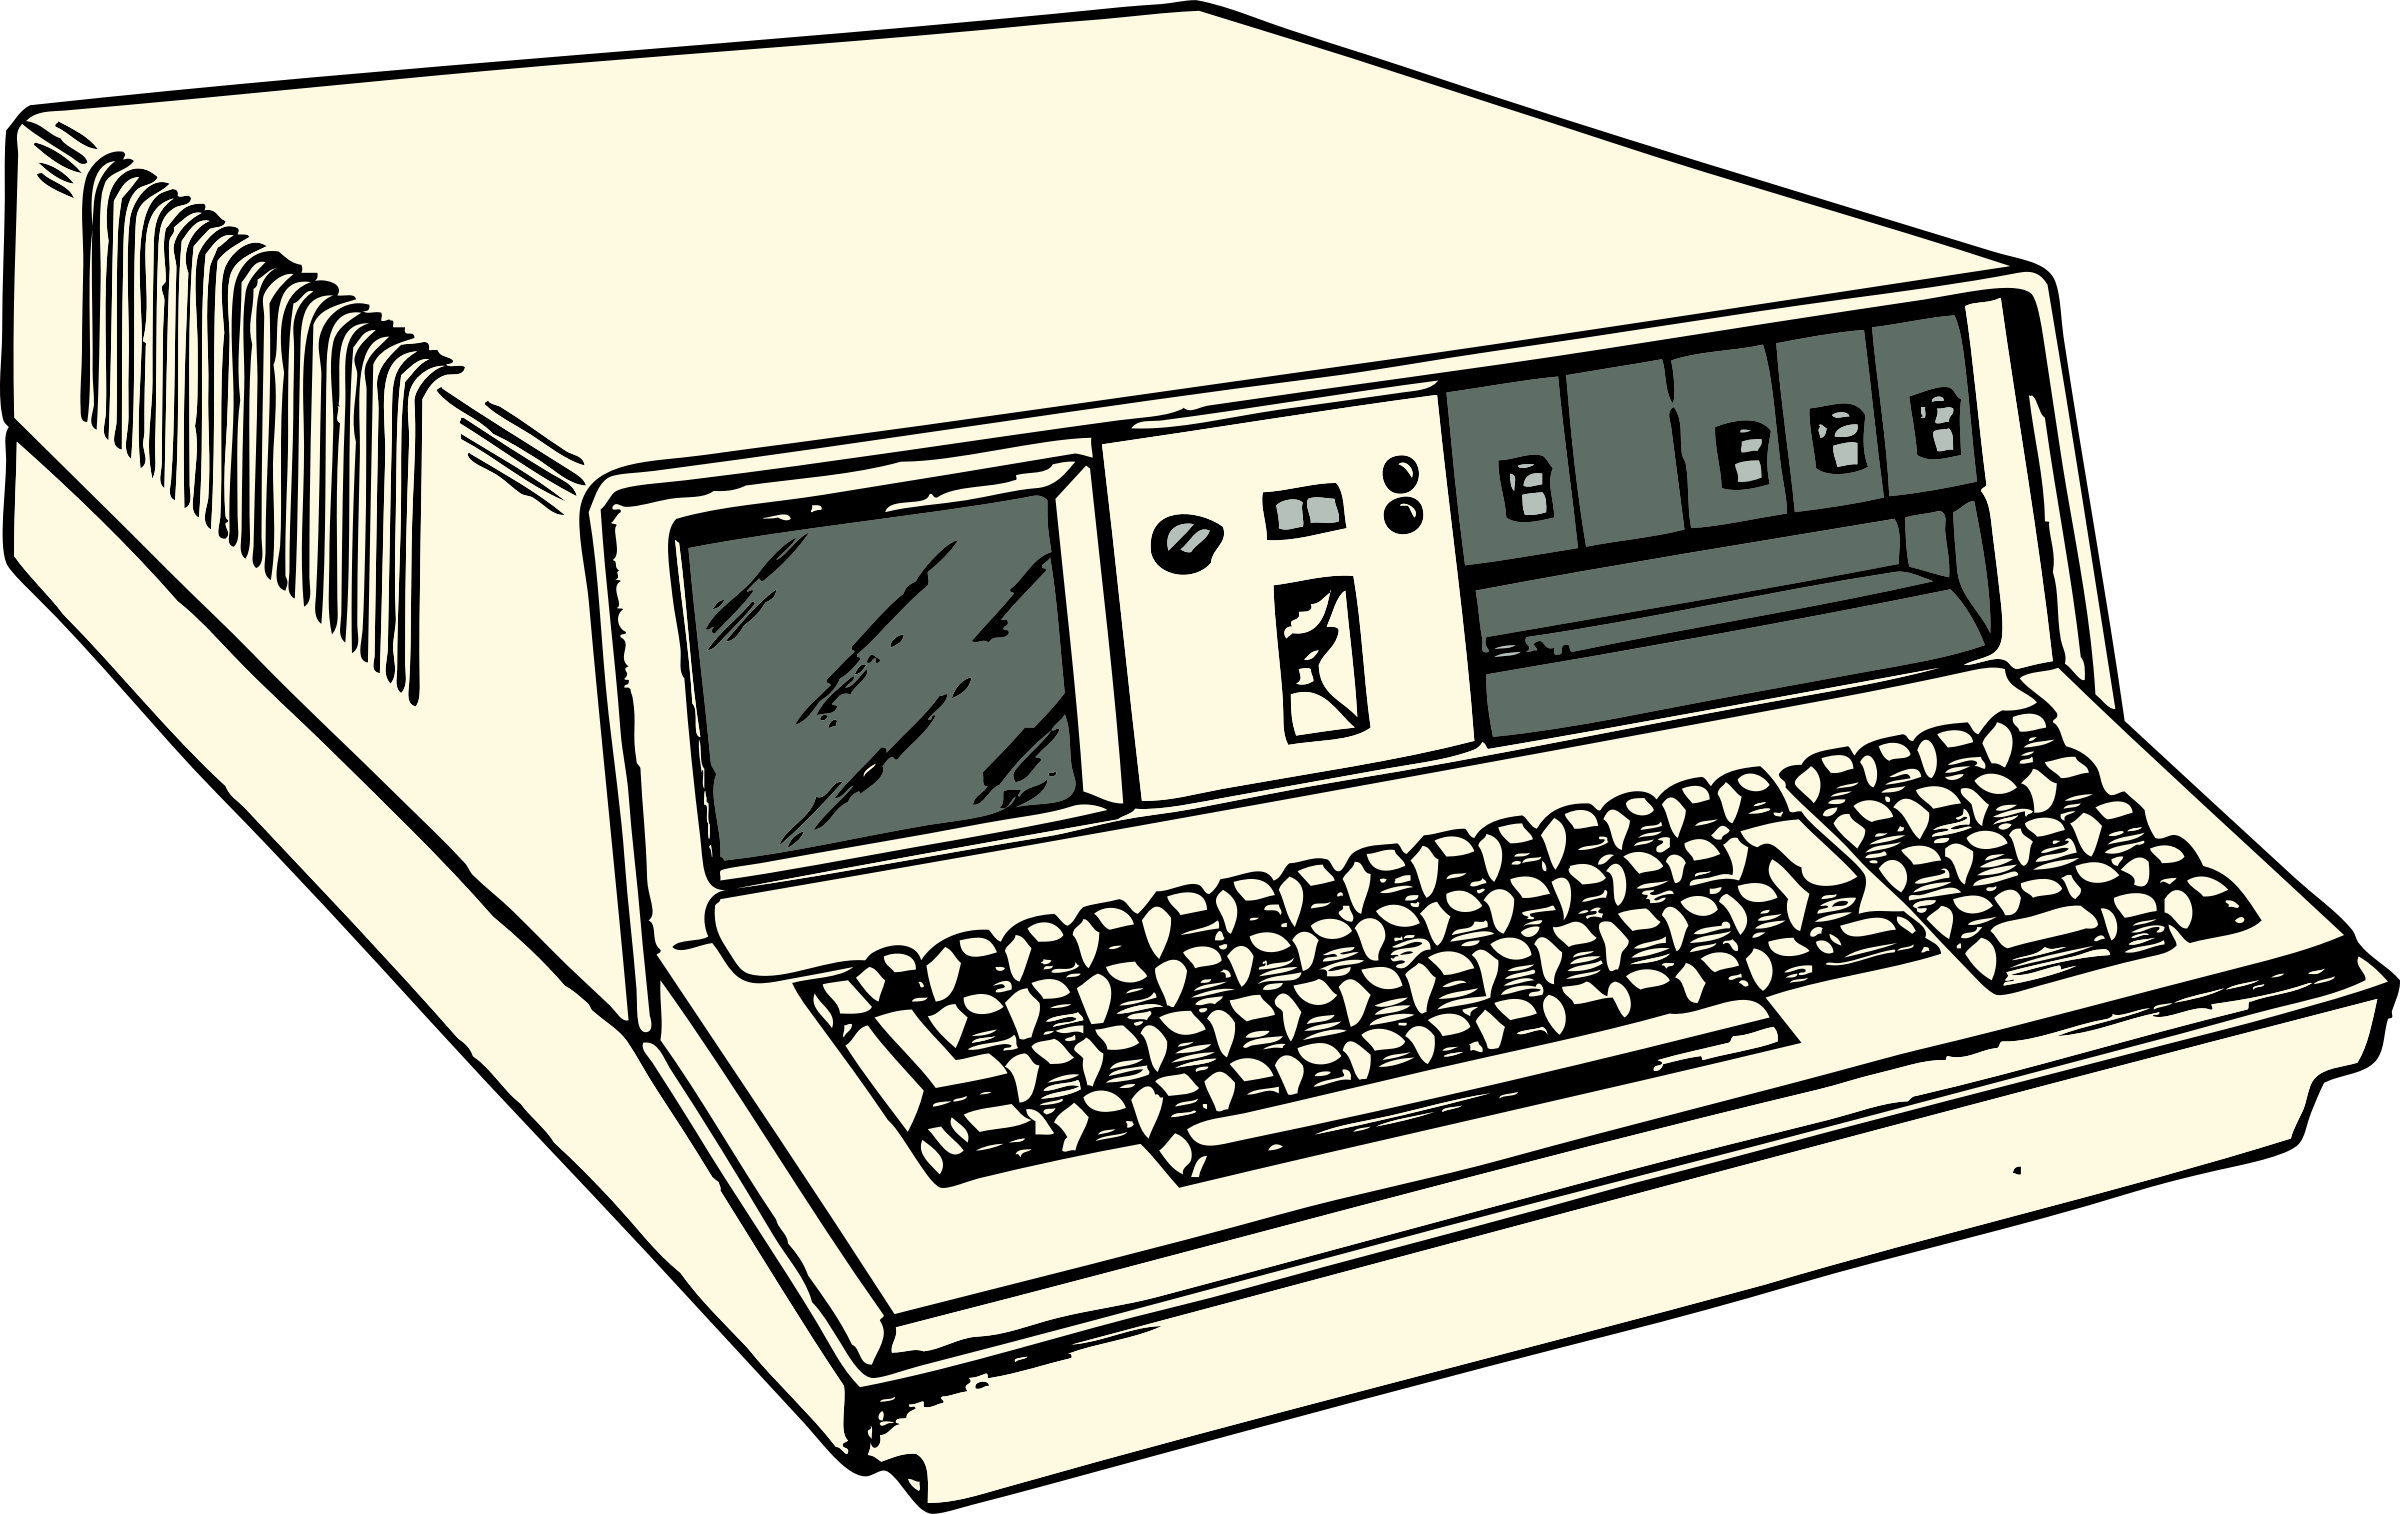 70s era portable computer by johnny_automatic